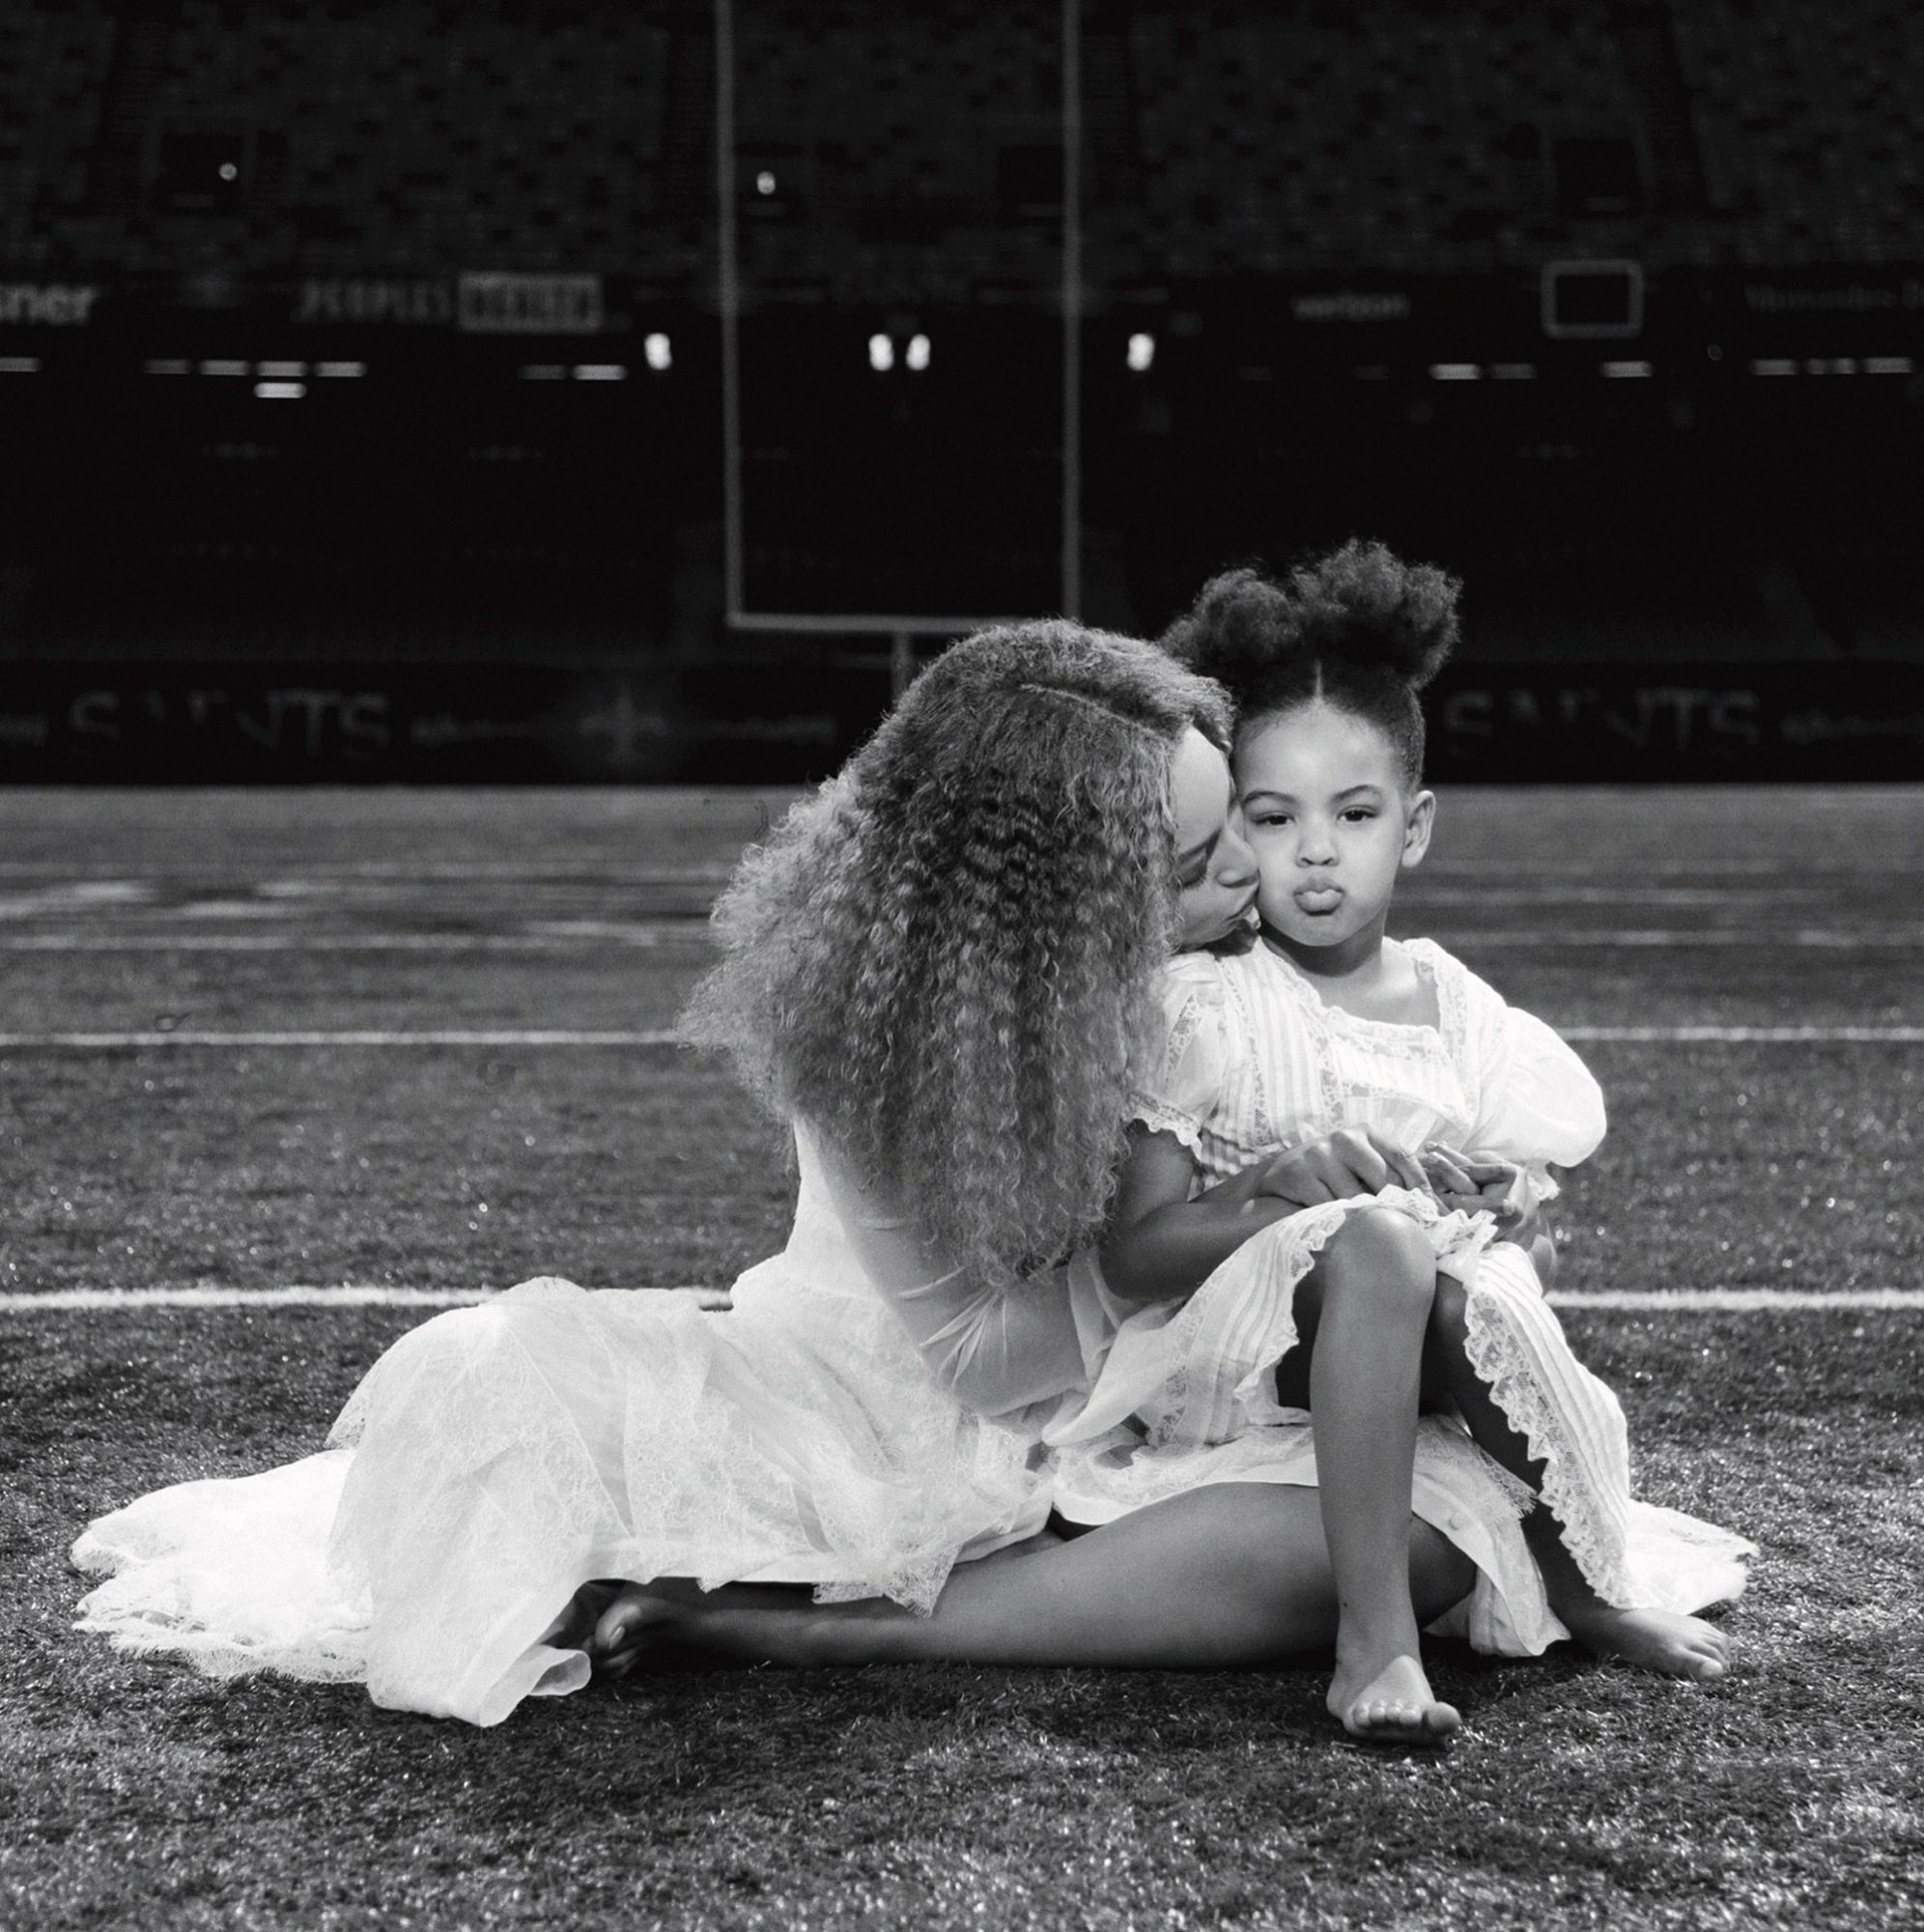 beyonce and blue ivyCredit: Courtesy Beyonce